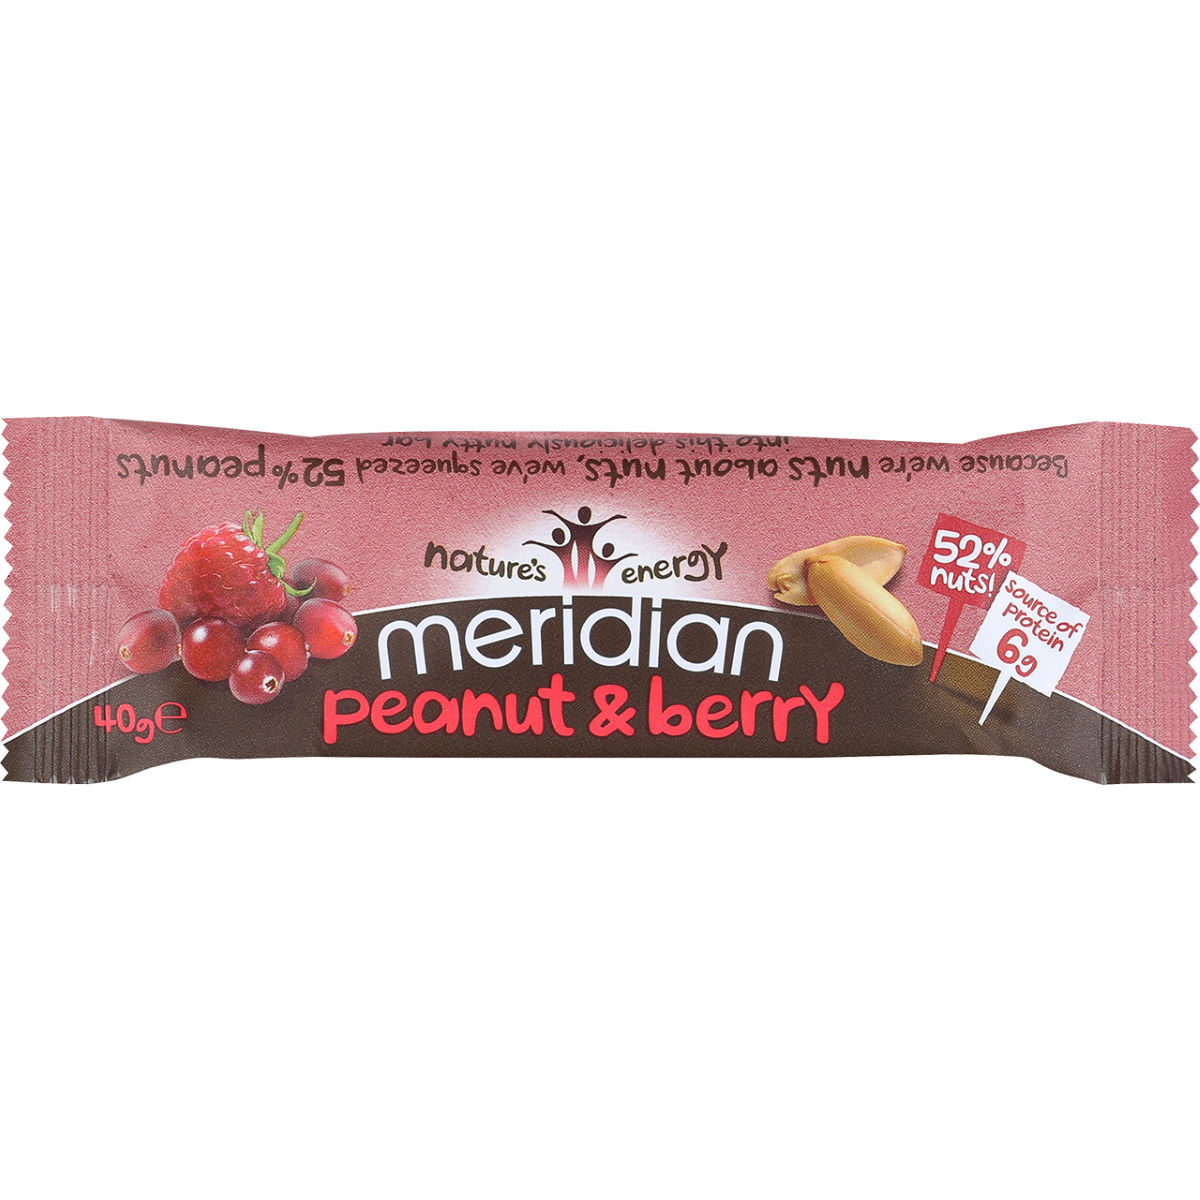 Image of Barre Meridian Cacahuète (18 x 40 g) - 18 x 40g 11-20 Peanut & Berry